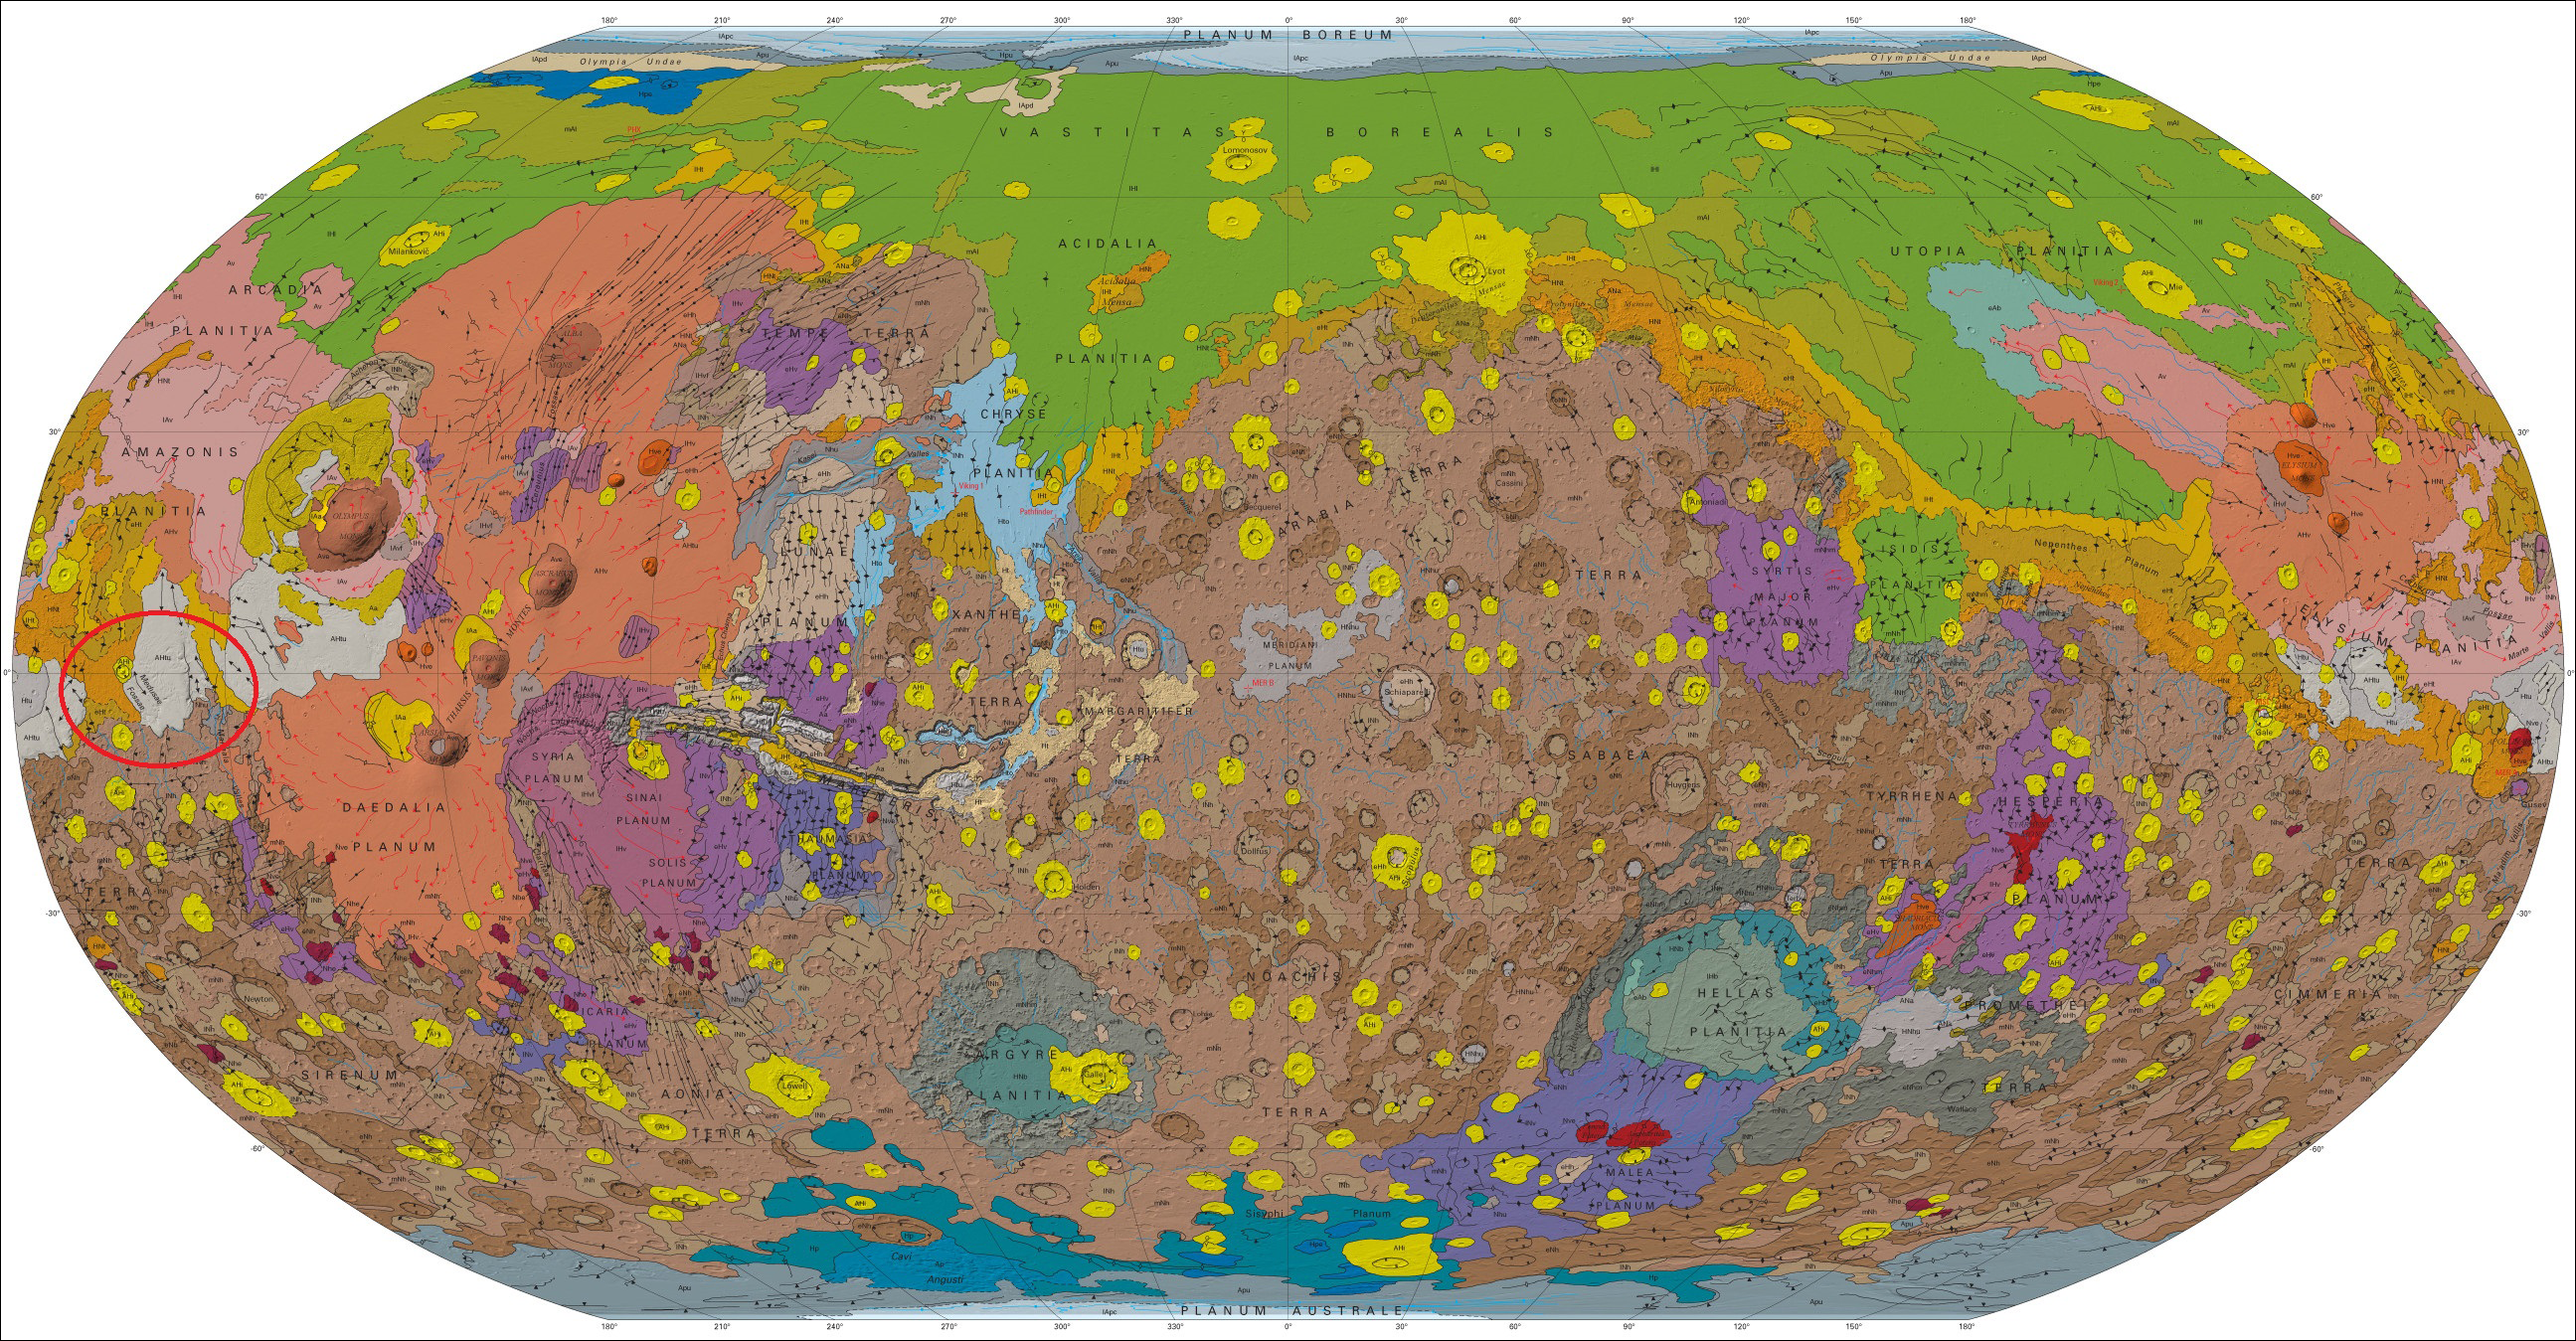 Global geographic map of Mars